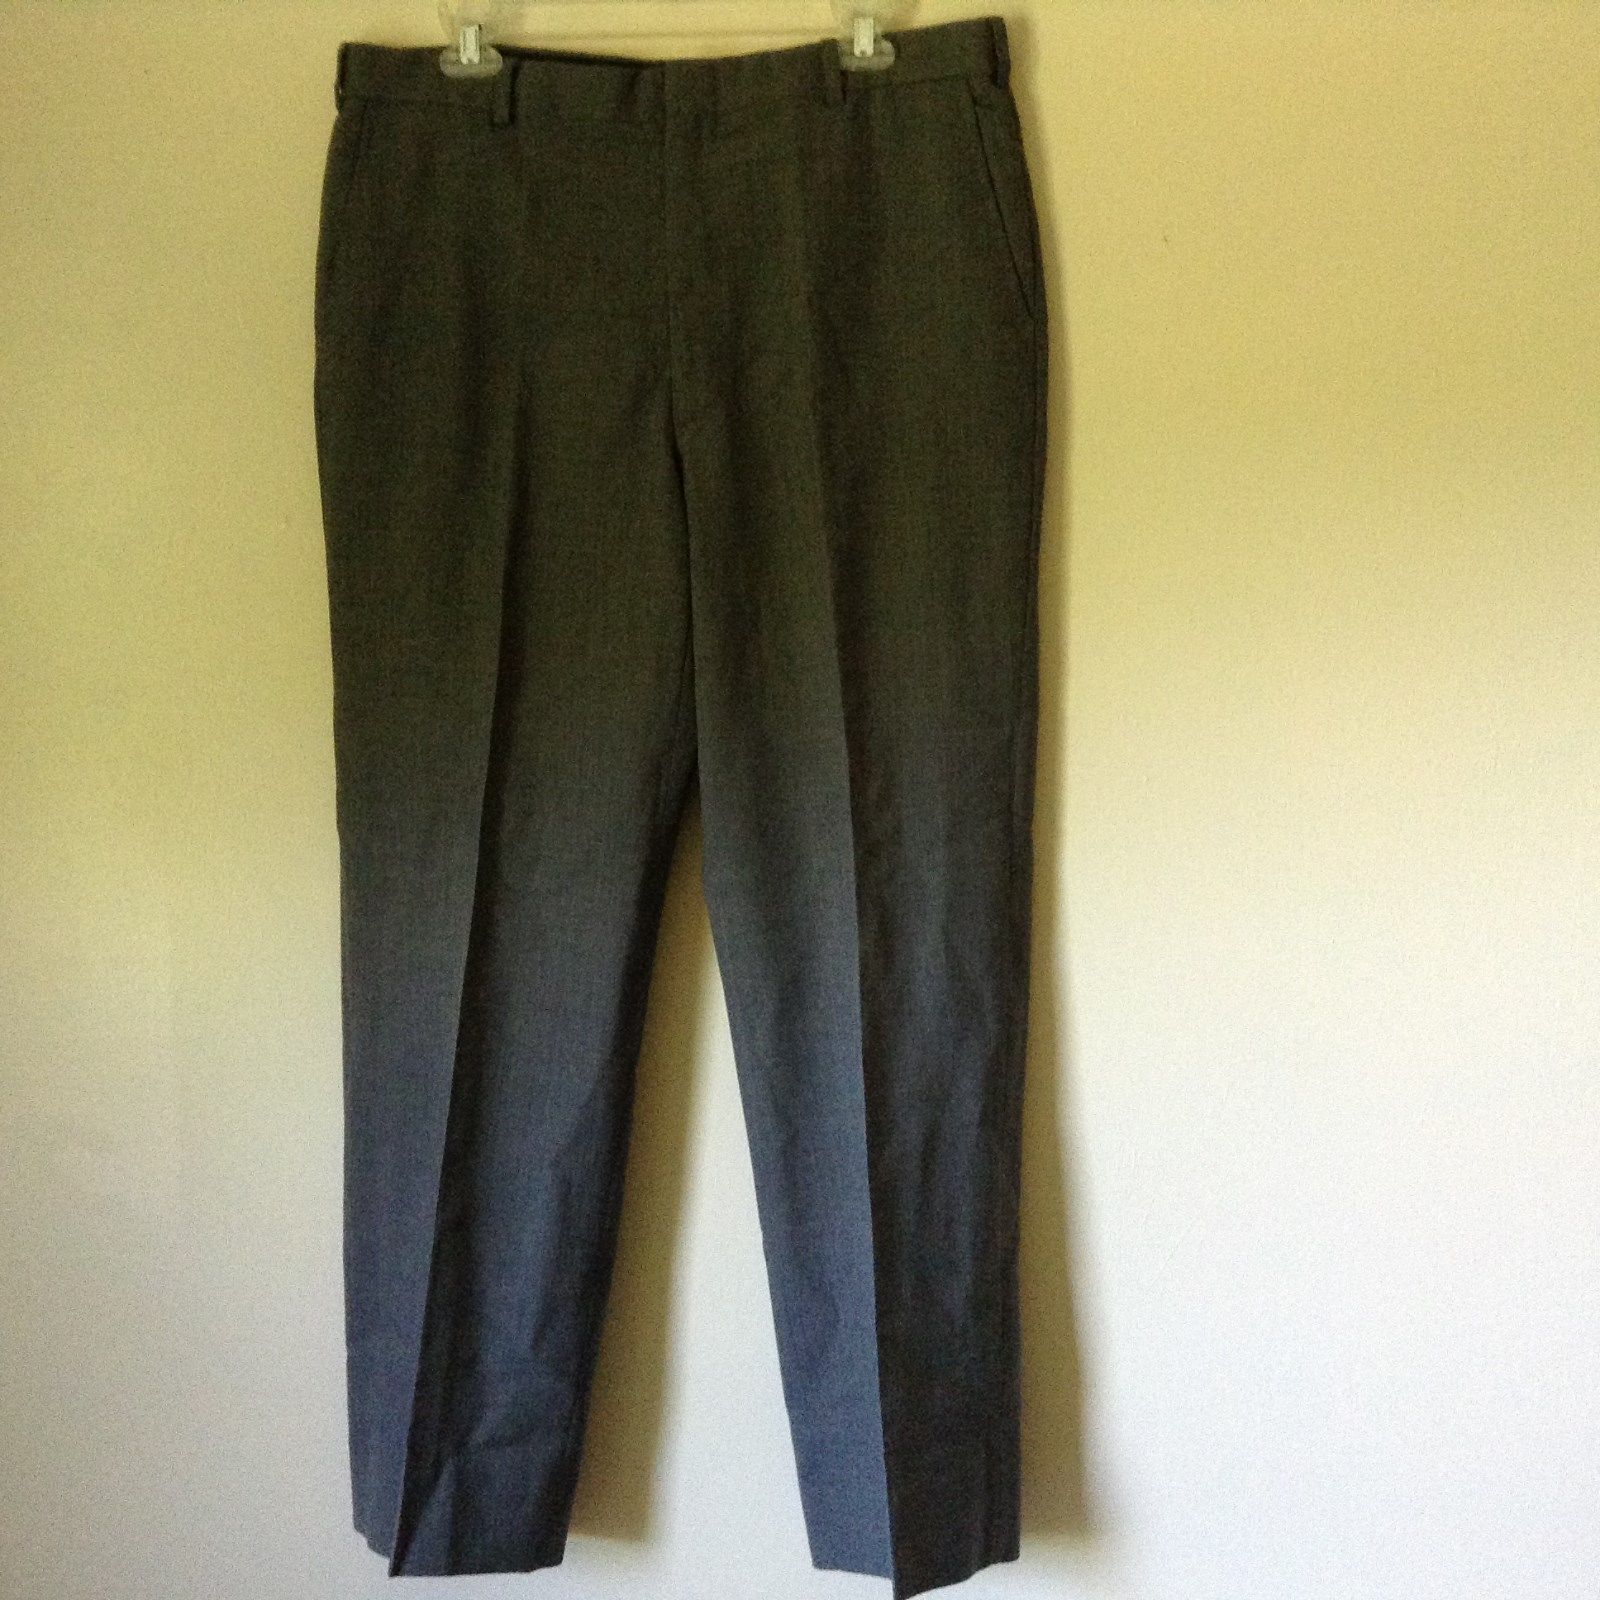 Tailored Gray Pleated Front Dress Pants 100 Percent Wool Measurements Below